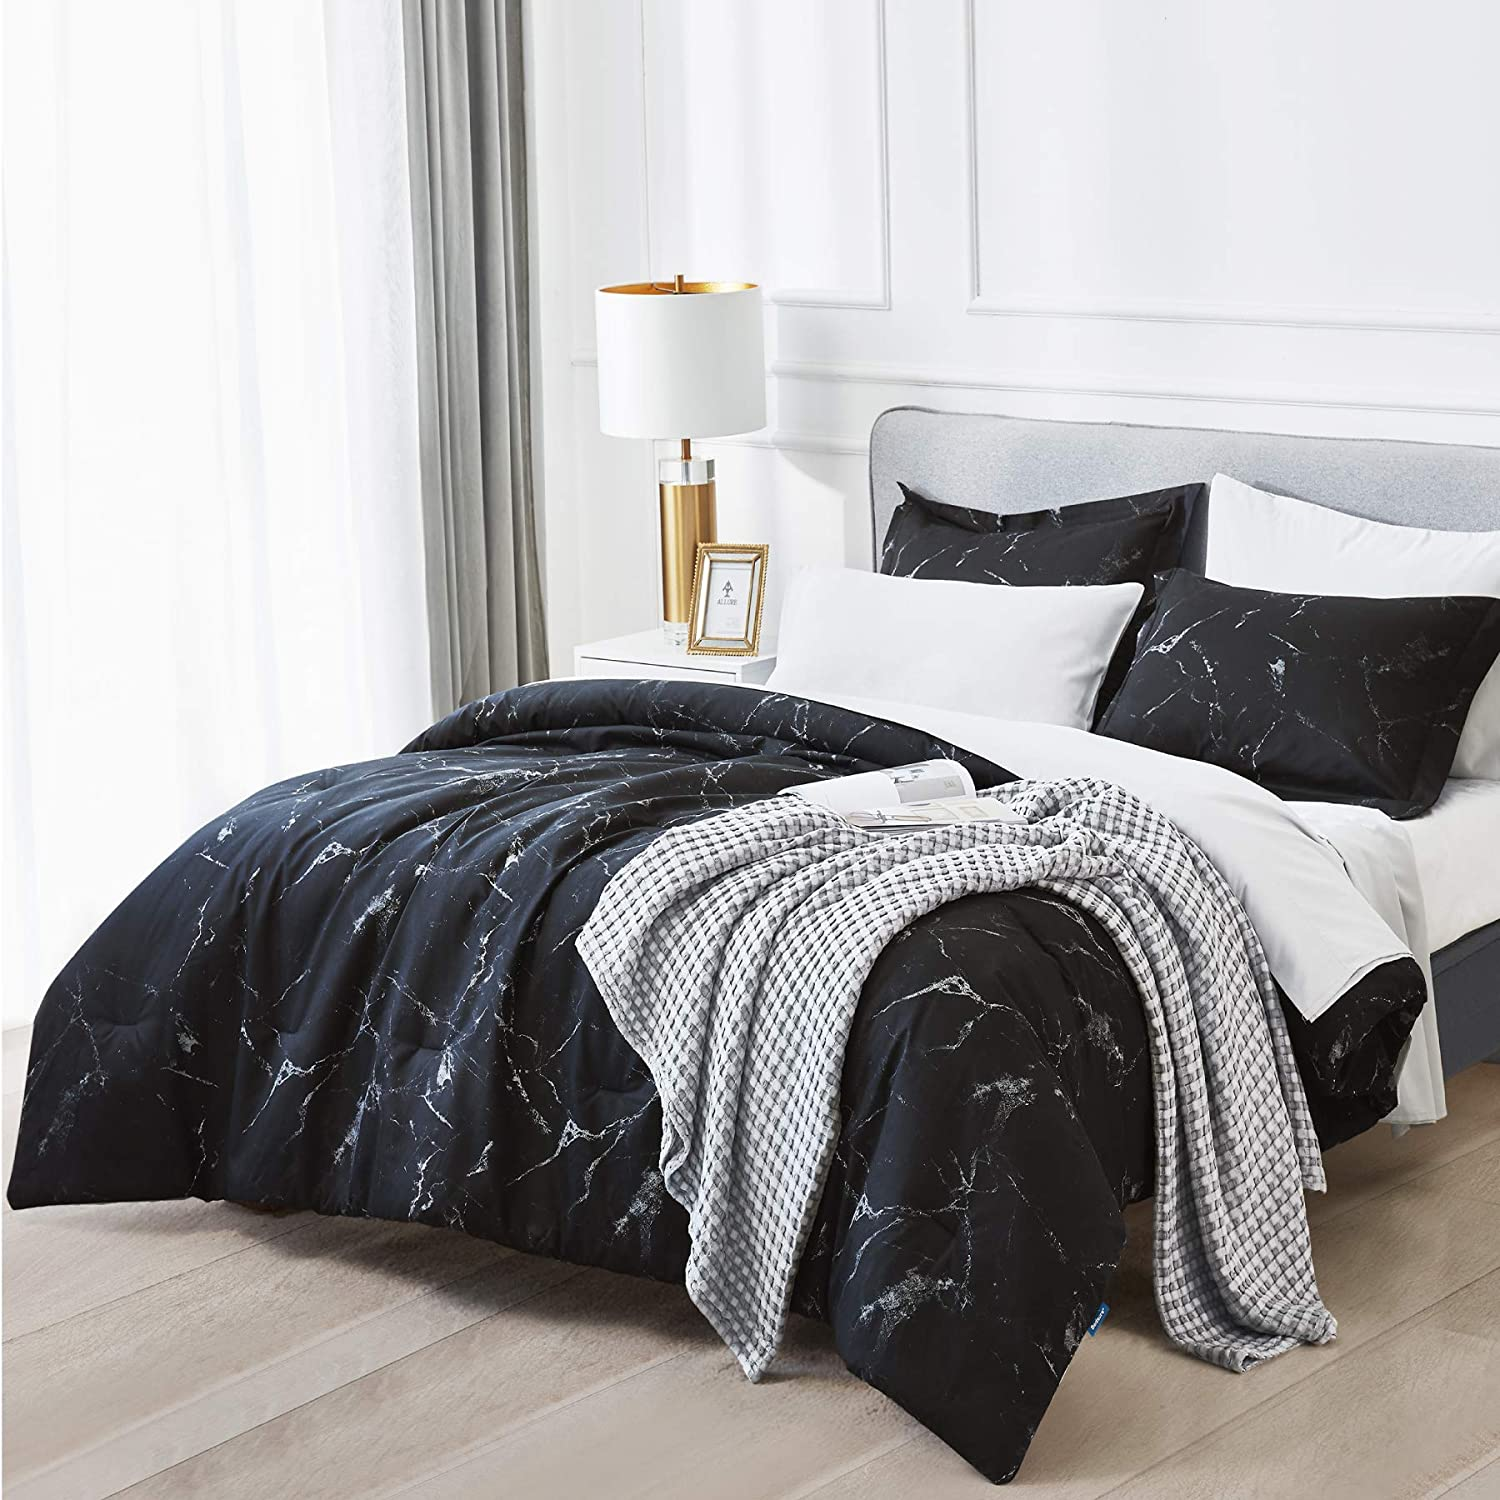 Bedsure Marble Printed Comforter Set (Twin, Black) - 2 Piece Sets - Super Soft Microfiber Bedding for All Seasons - Reversible Down Alternative Comforter with 1 Pillow Sham